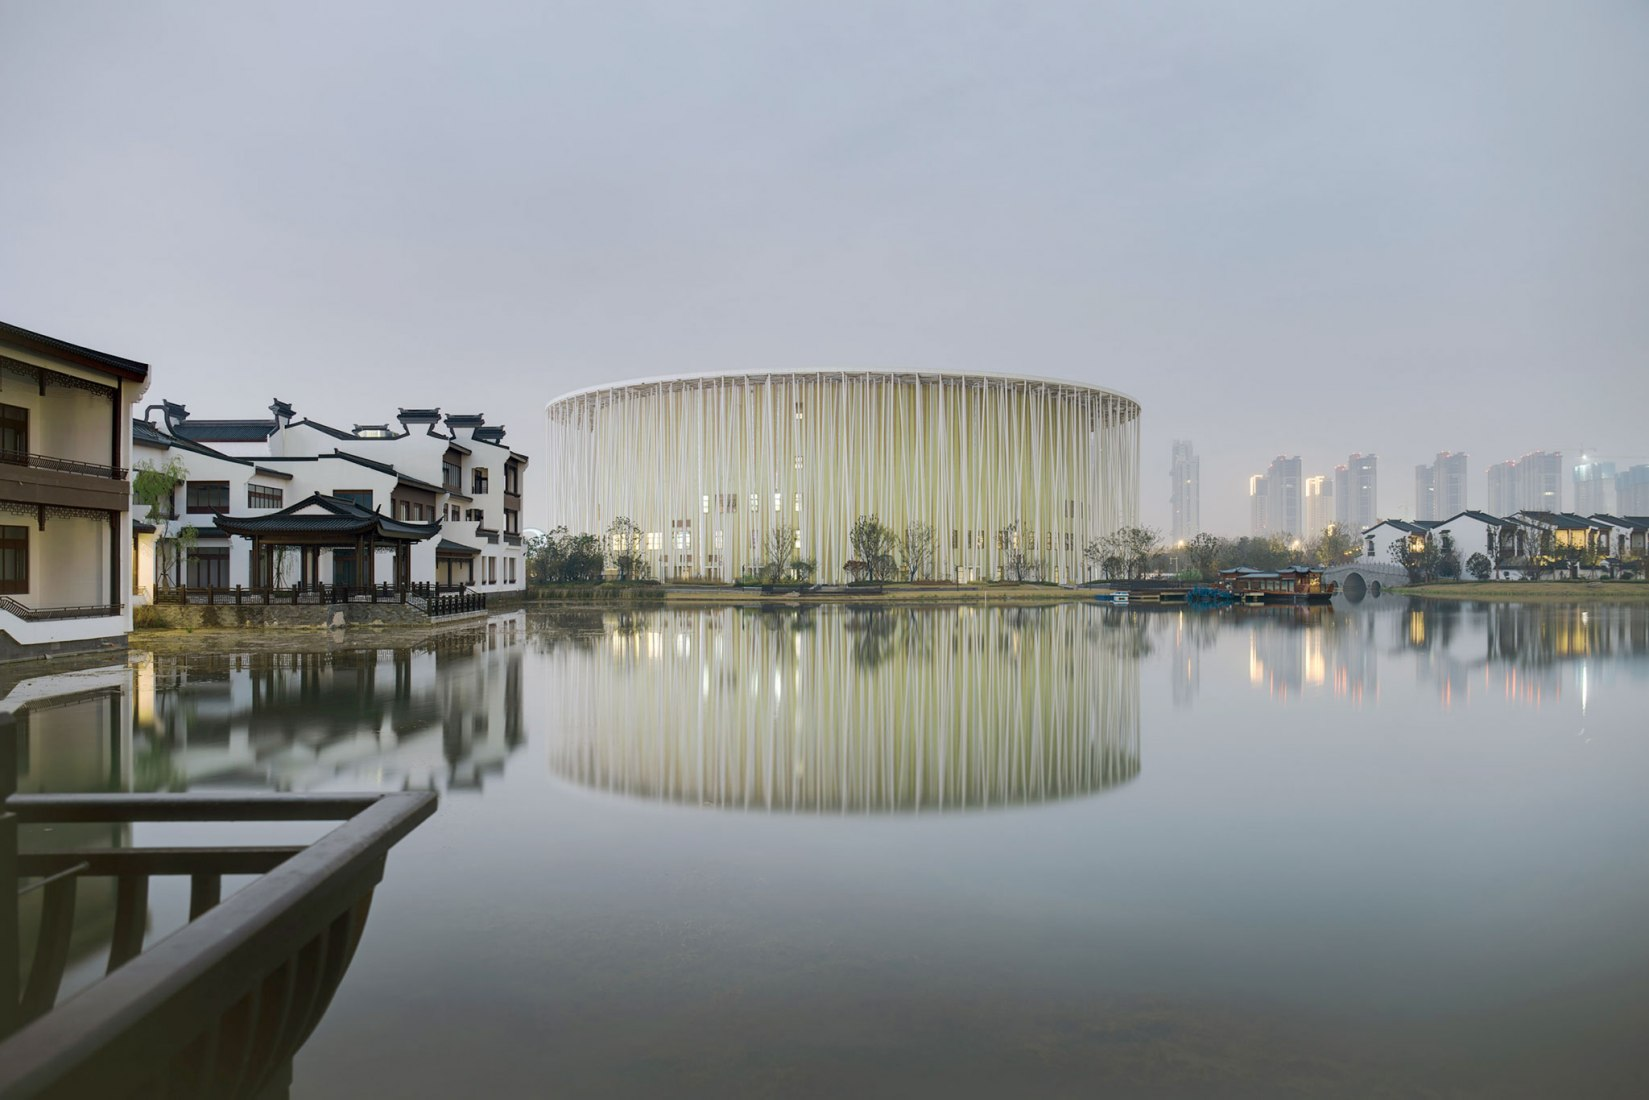 Wuxi TAIHU Show Theatre by Steven Chilton Architects | SCA. Photography by Kris Provoost